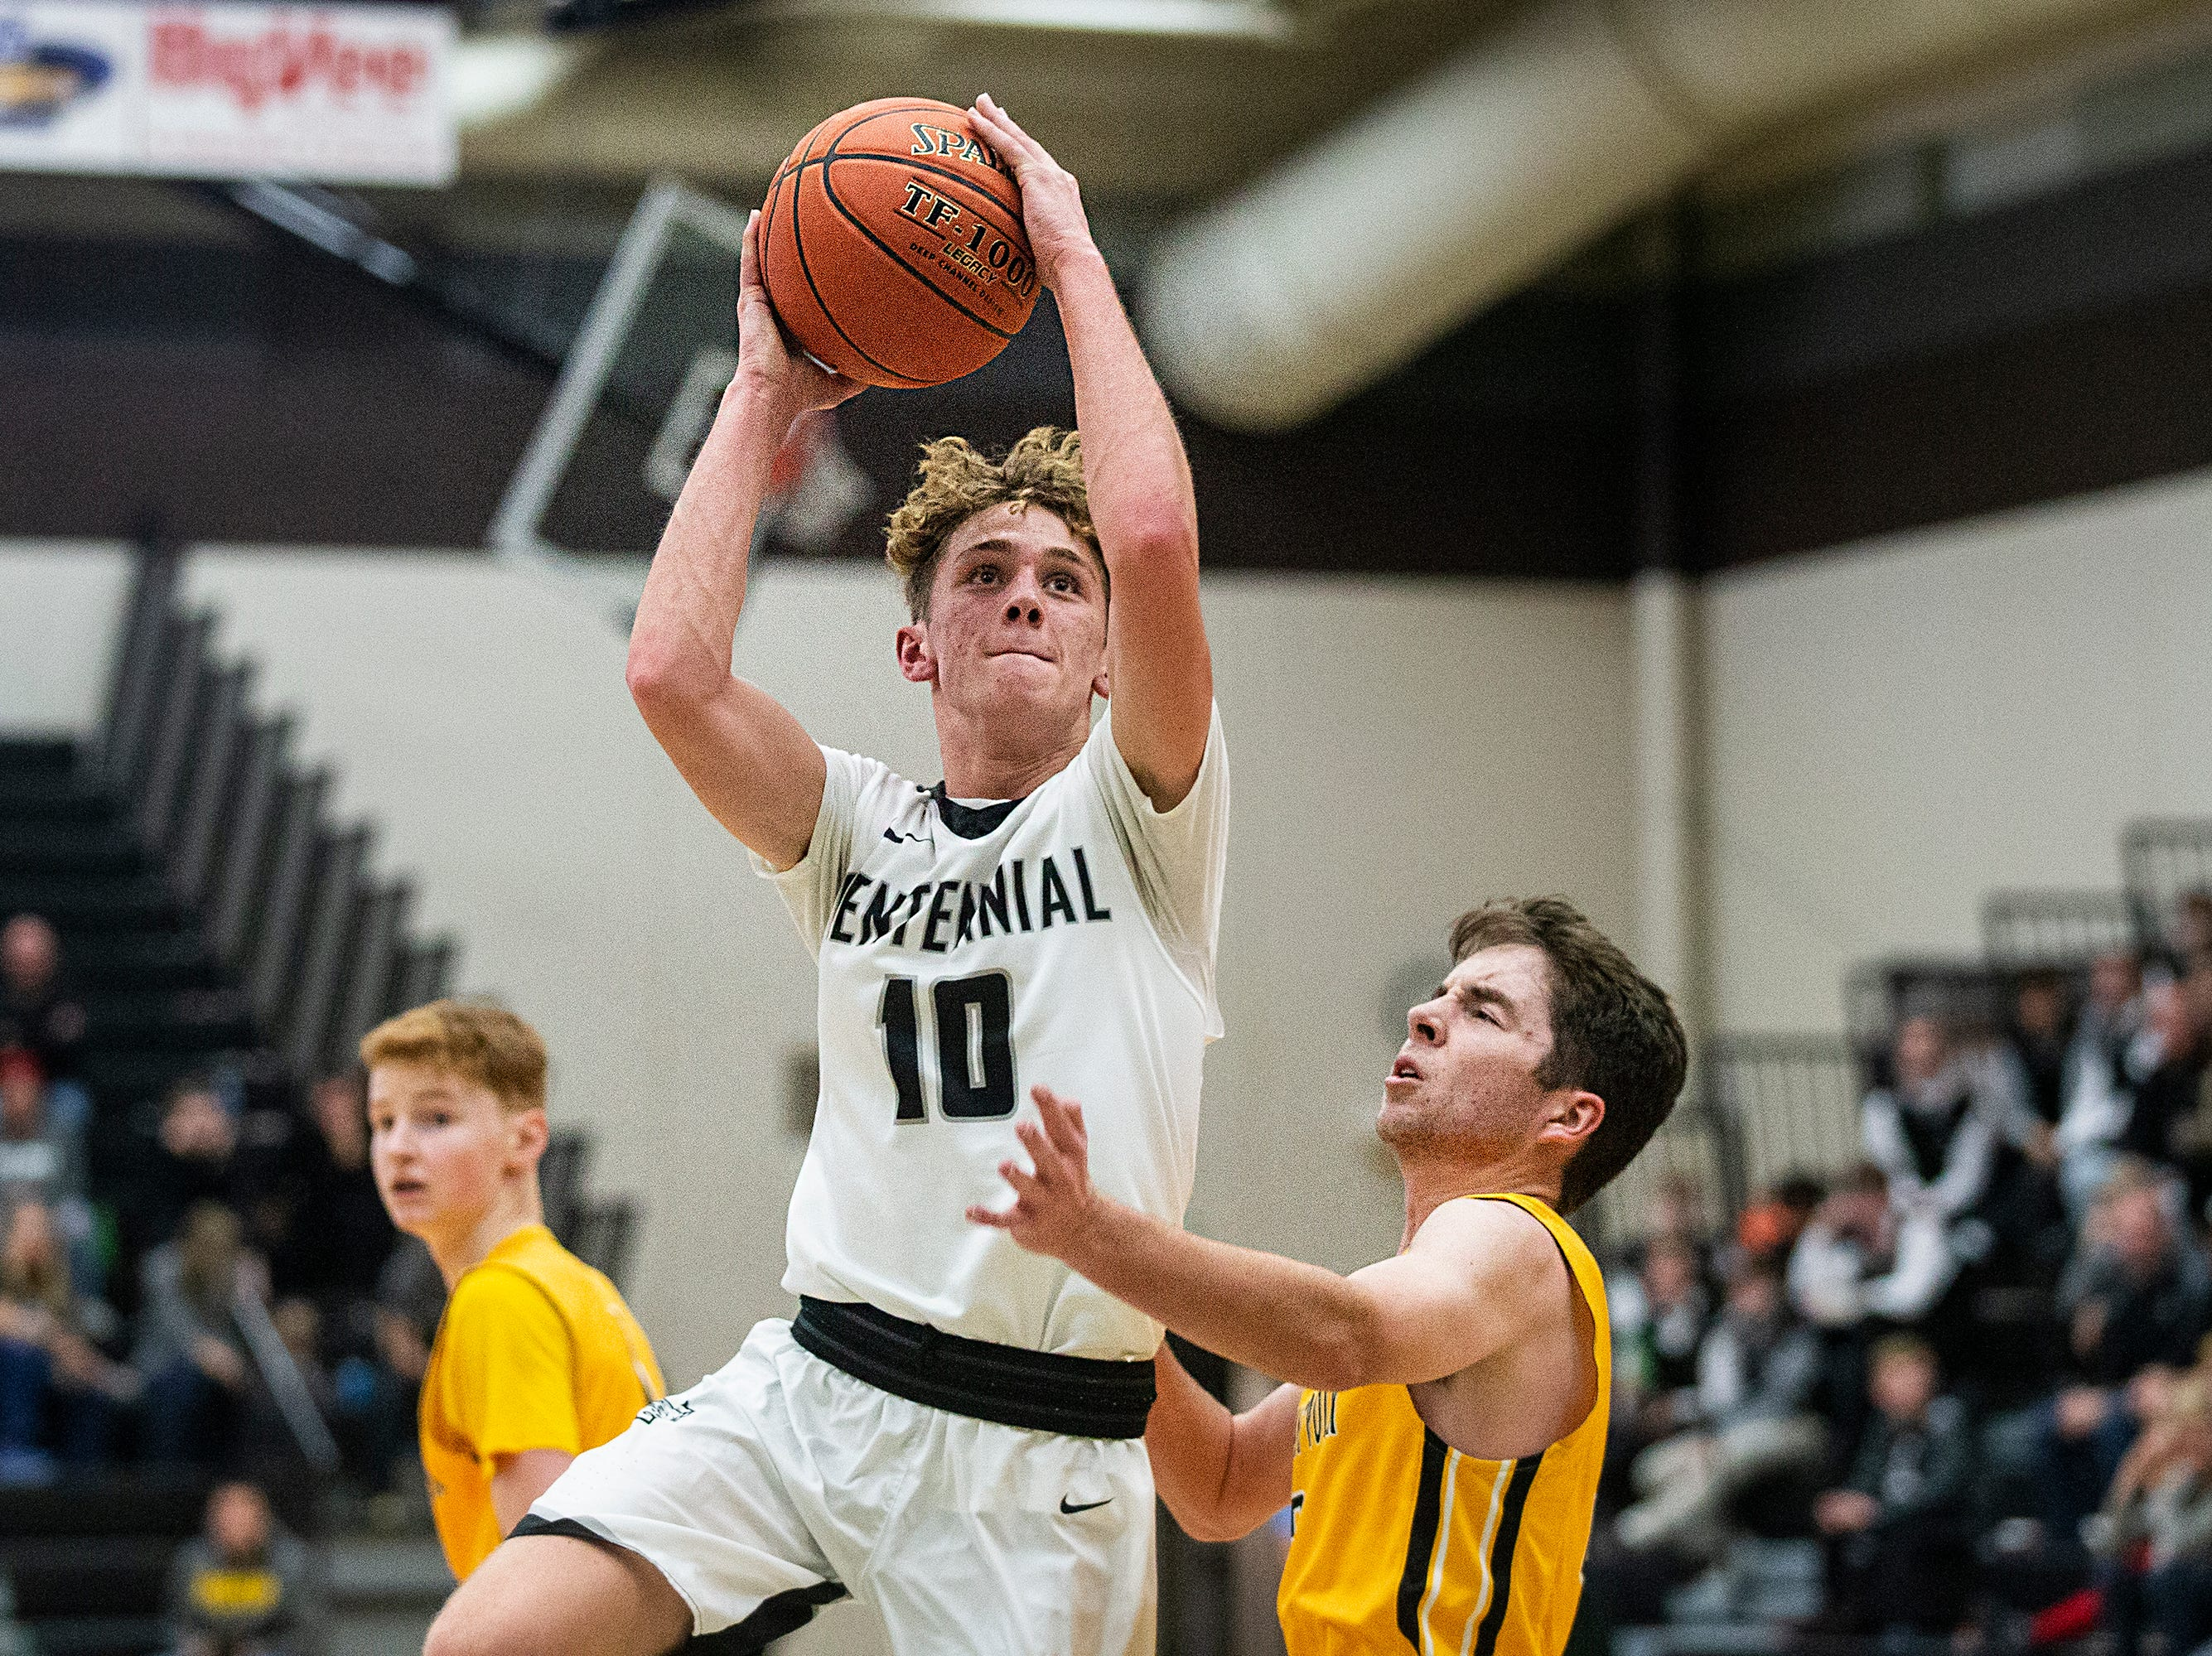 Centennial's Caleb Van Meter shoots the ball during the Southeast Polk vs. Ankeny Centennial boy's basketball game on Tuesday, Nov. 27, 2018, at Ankeny Centennial High School.